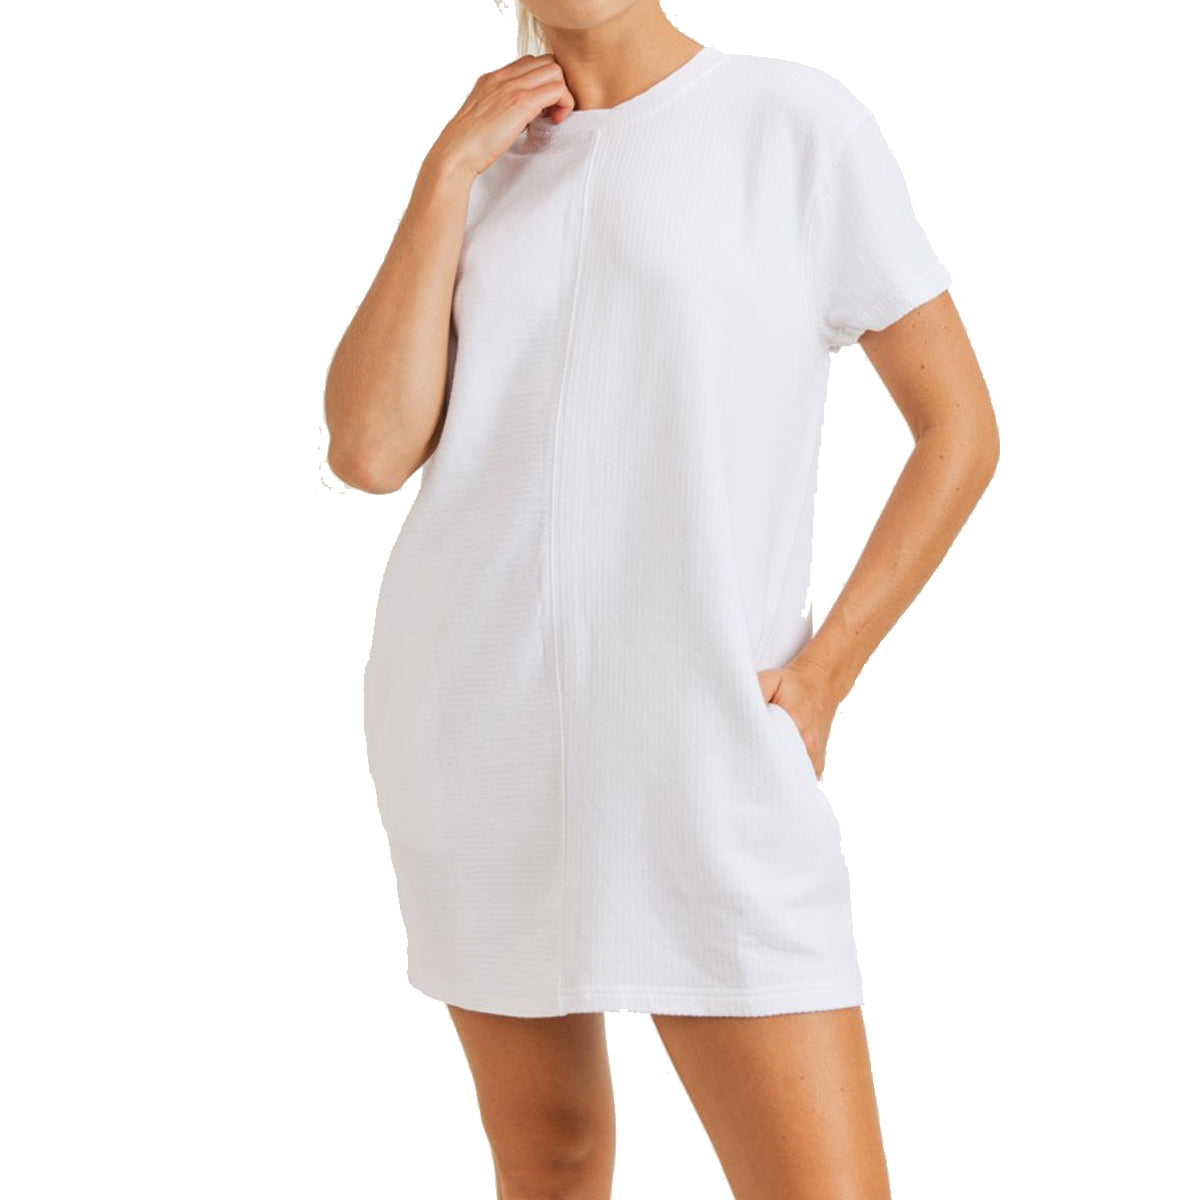 Mono B Women's Cotton Mineral Washed Ribbed Tennis Dress - White